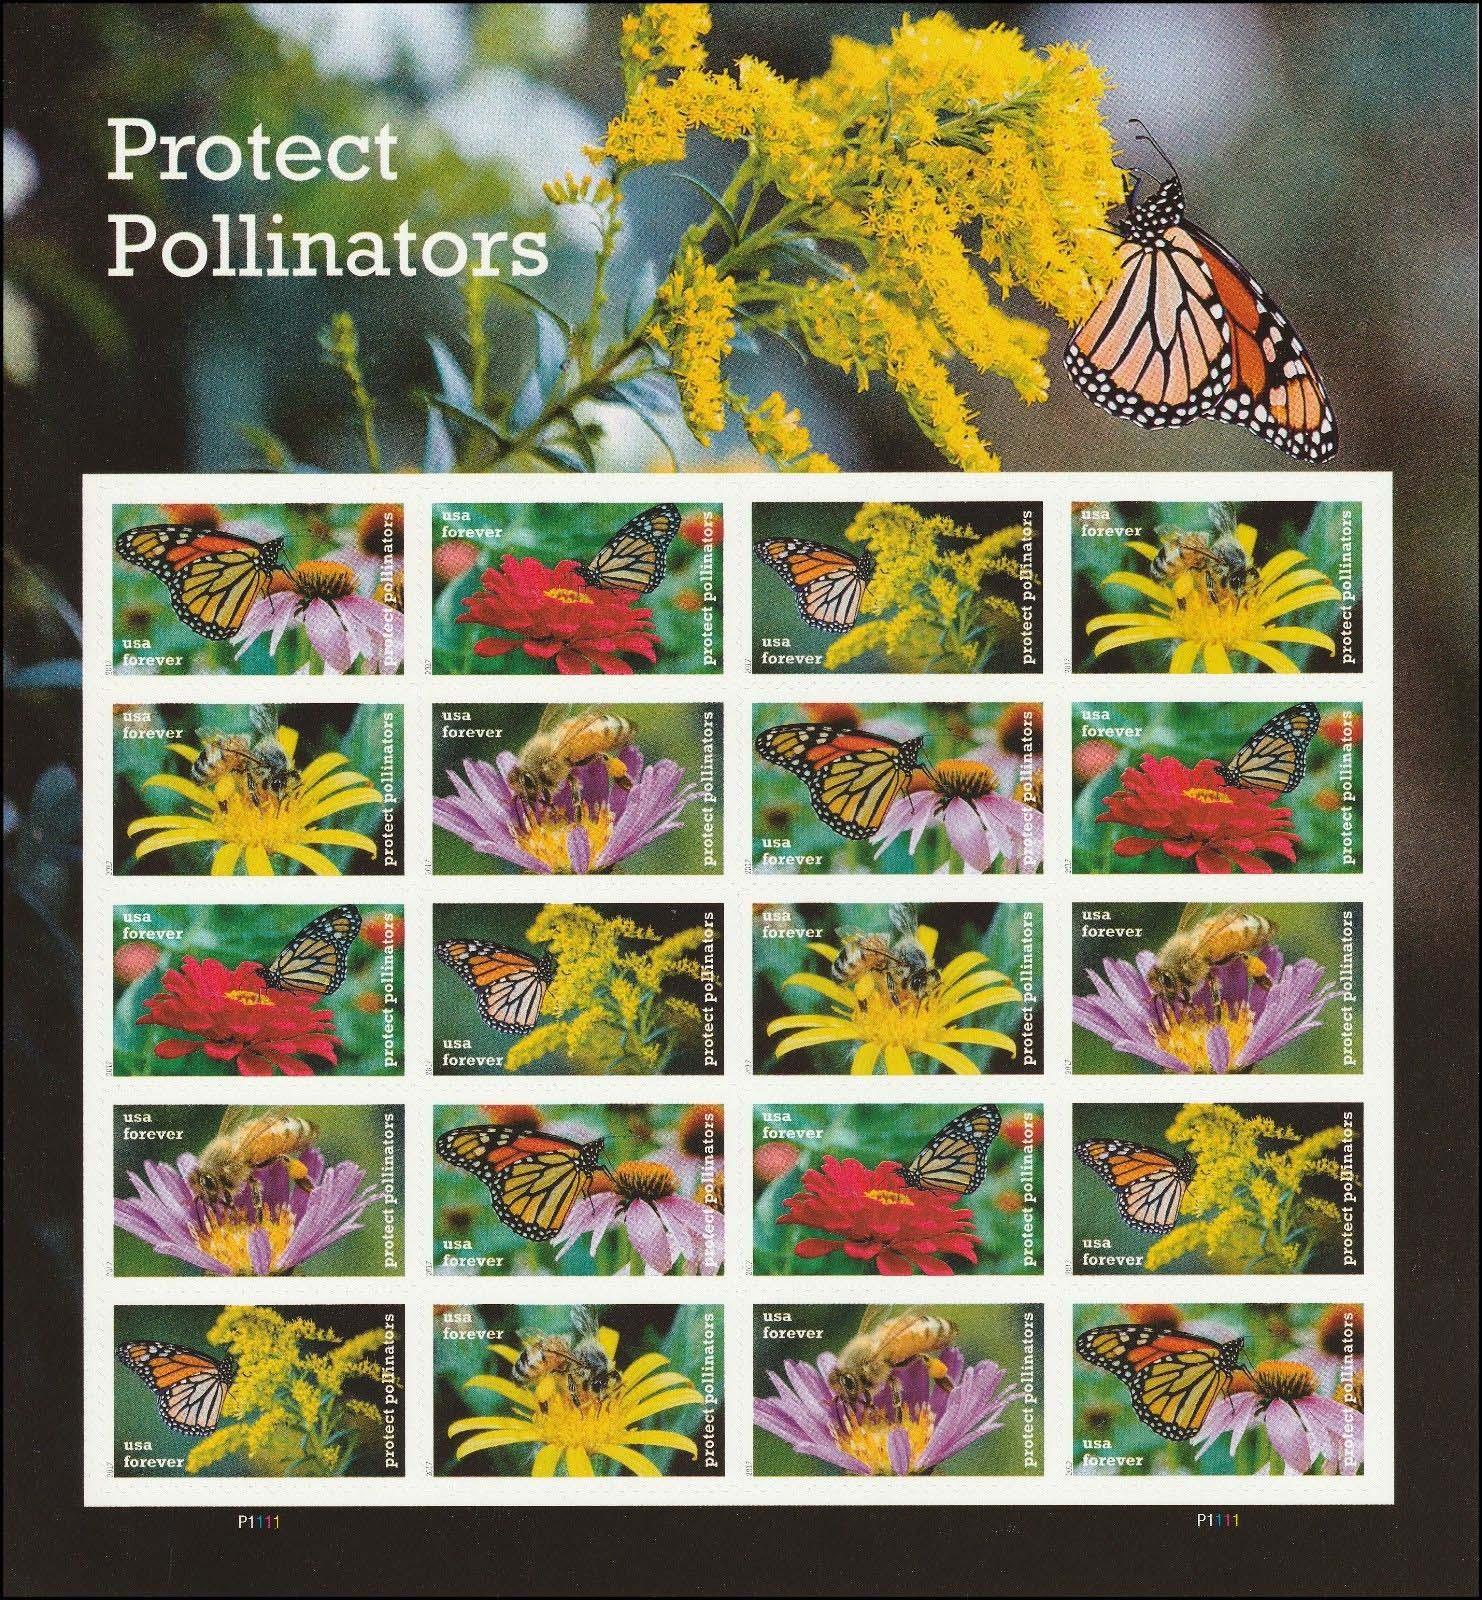 Scott 5228-5232, Pane of 20, Forever Stamp, Protect Pollinators<p> <a href=&quot;/images/USA-Scott-5228-5232-Sheet.jpg&quot;><font color=green><b>View the image</a></b></font>